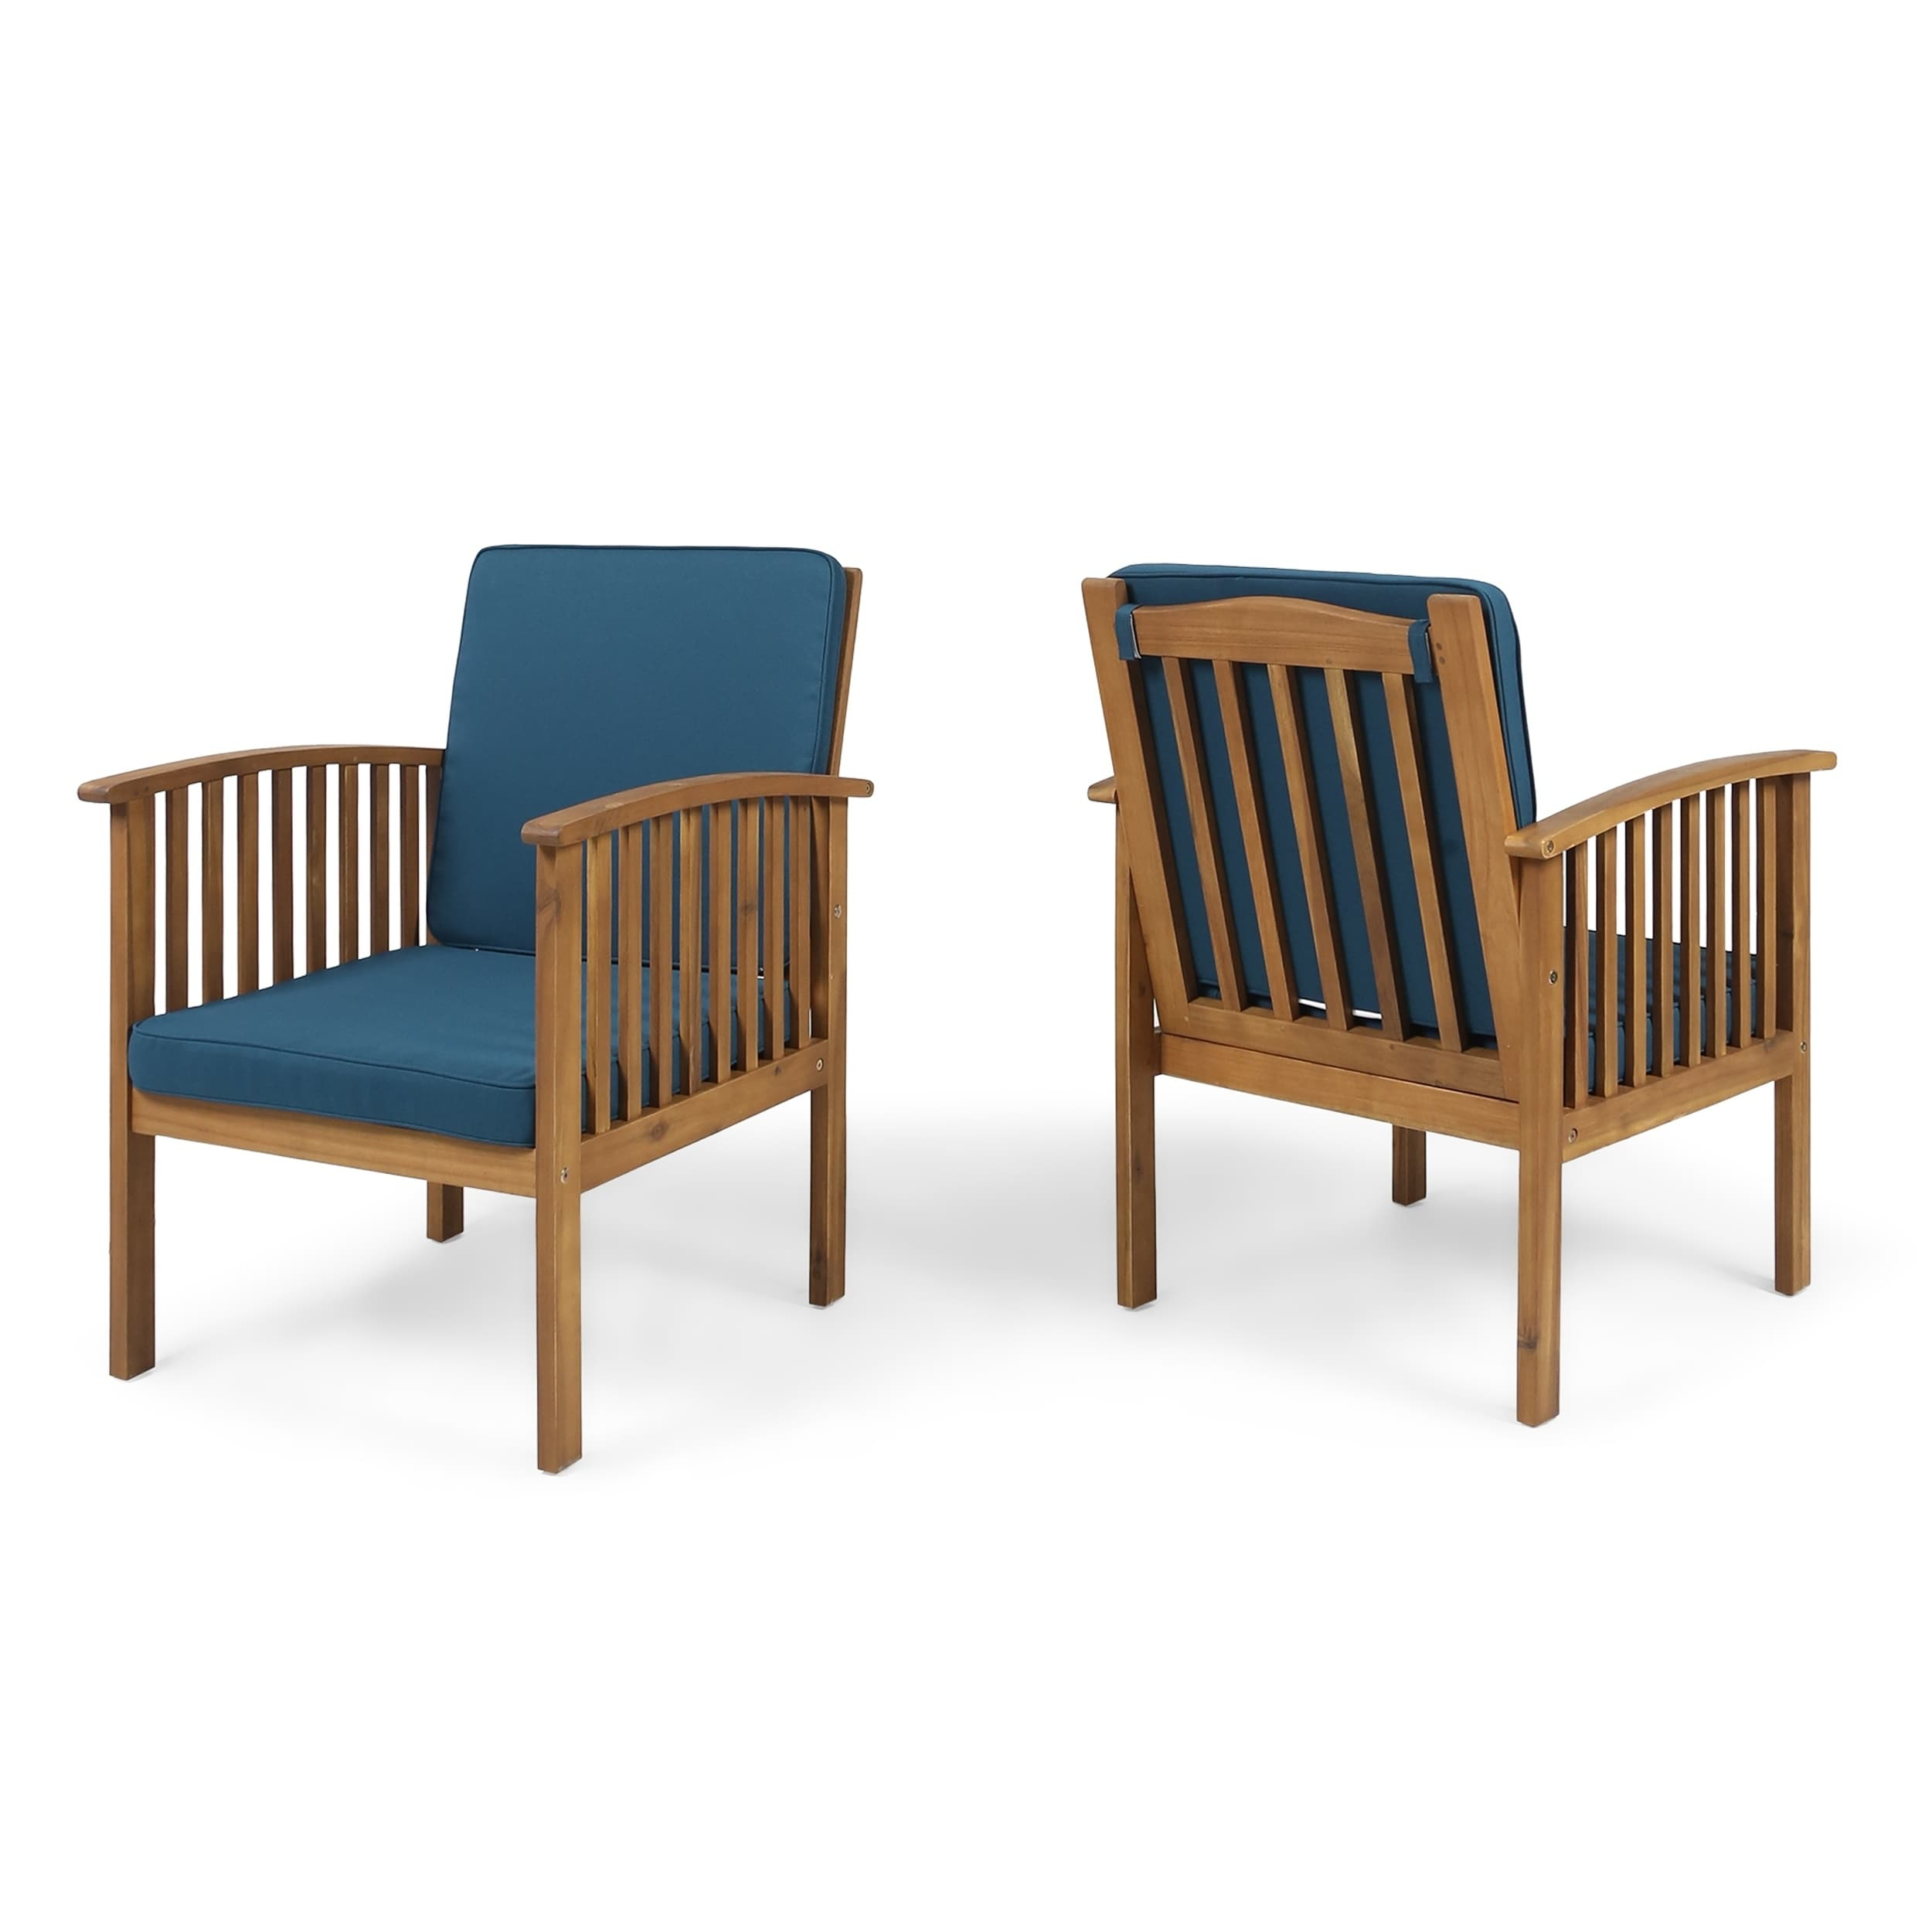 Christopher Knight Home Casa Acacia Outdoor Acacia Wood Club Chairs(Set of 2) by